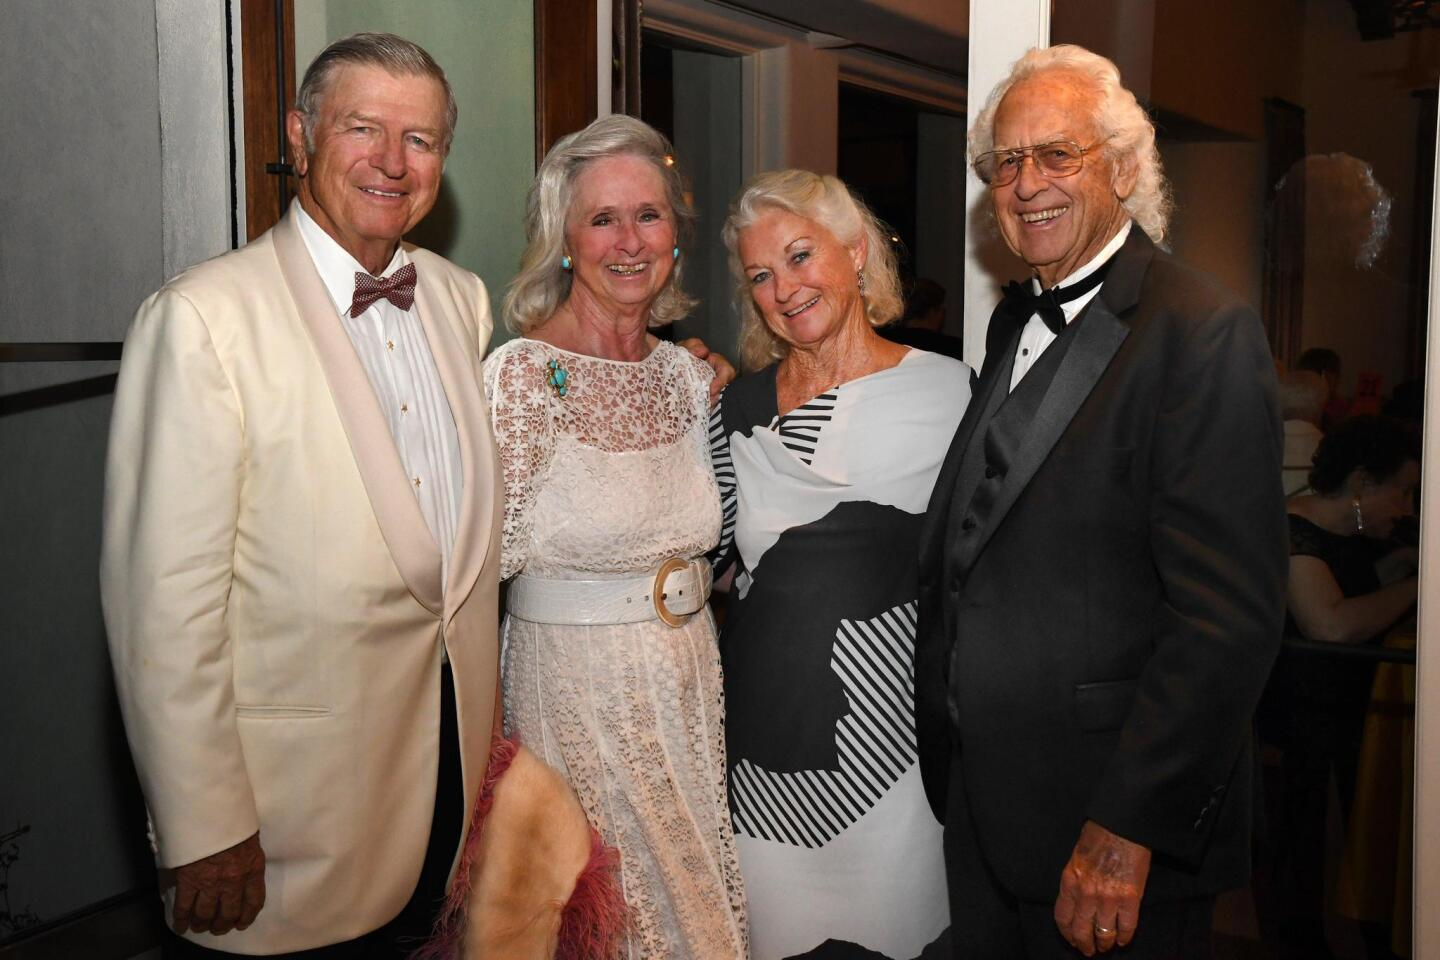 SummerFest gala guests have fond farewell for retiring music director